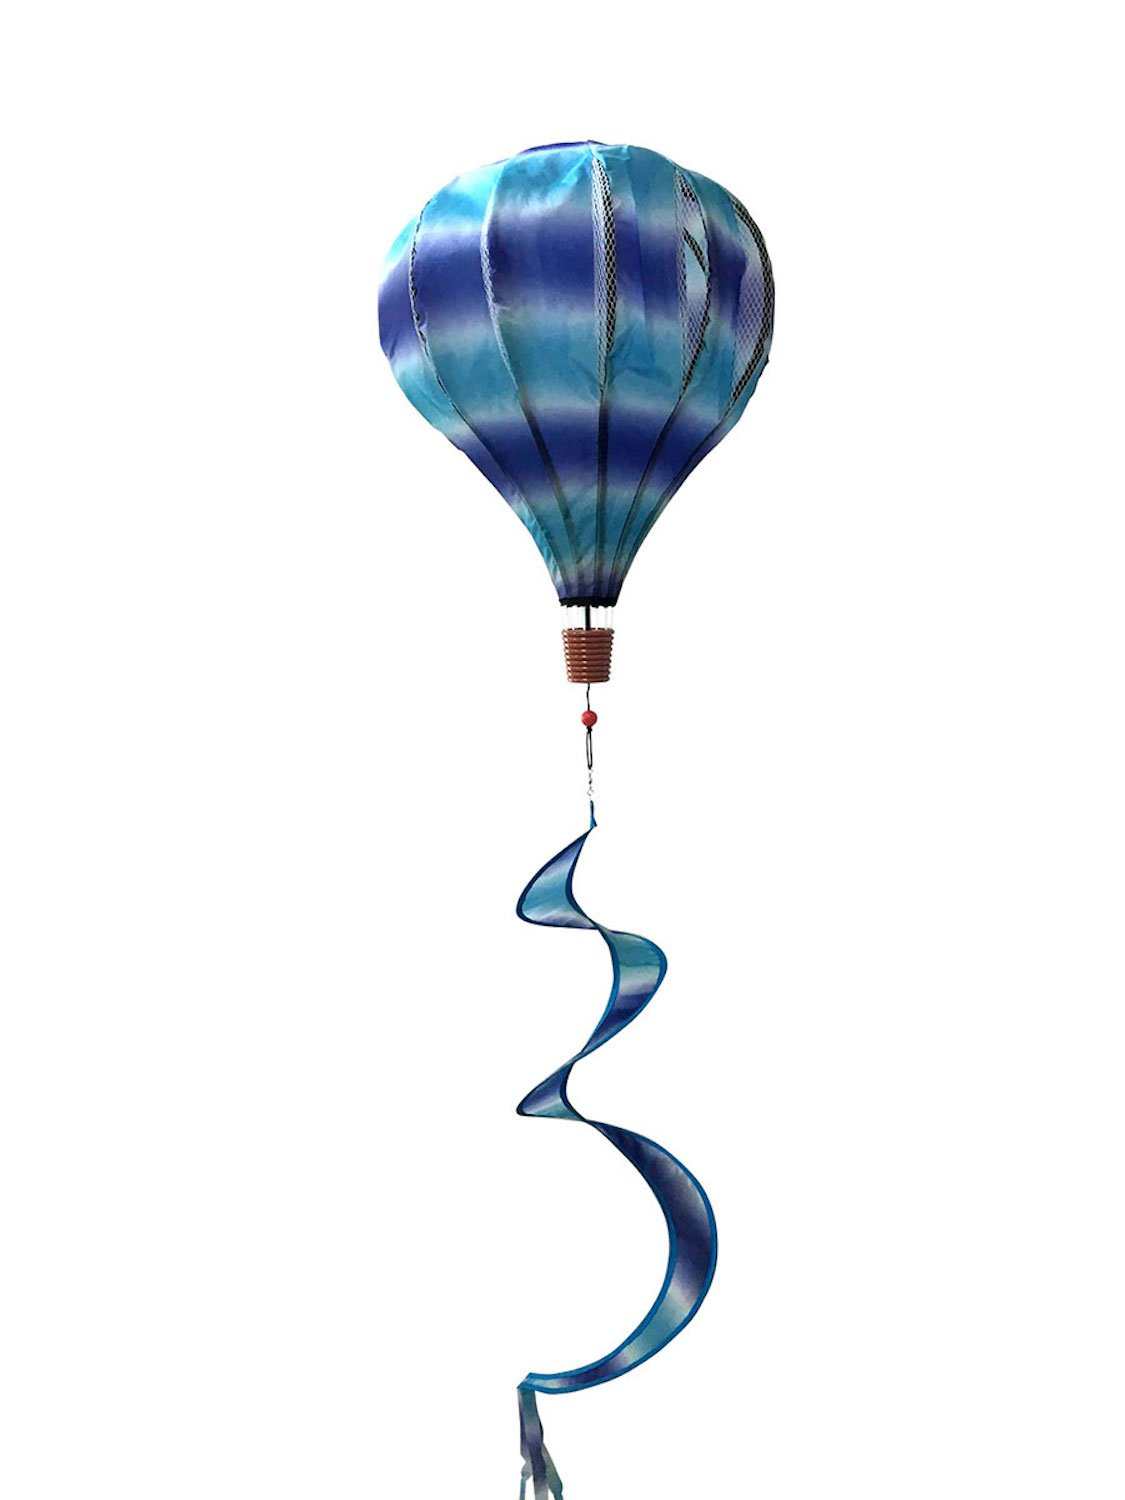 Blue & Purple Deluxe Hot Air Balloon Wind Twister Everyday 54''L Briarwood Lane by Briarwood Lane